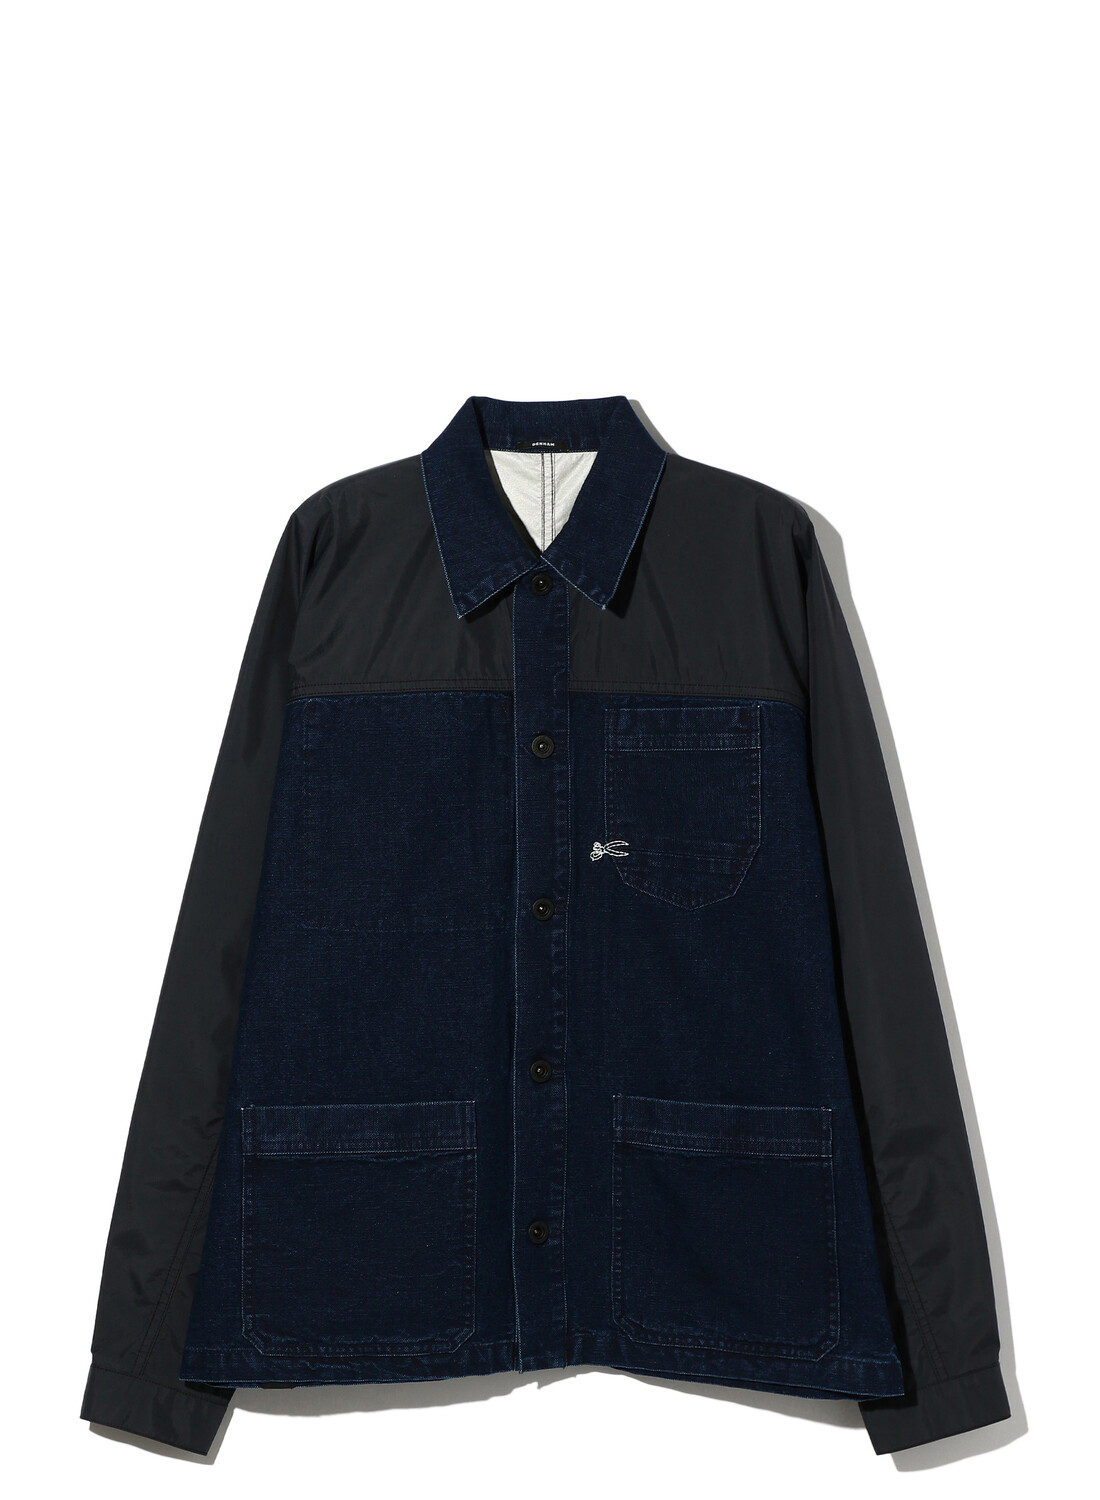 TWO TONE COVERALL